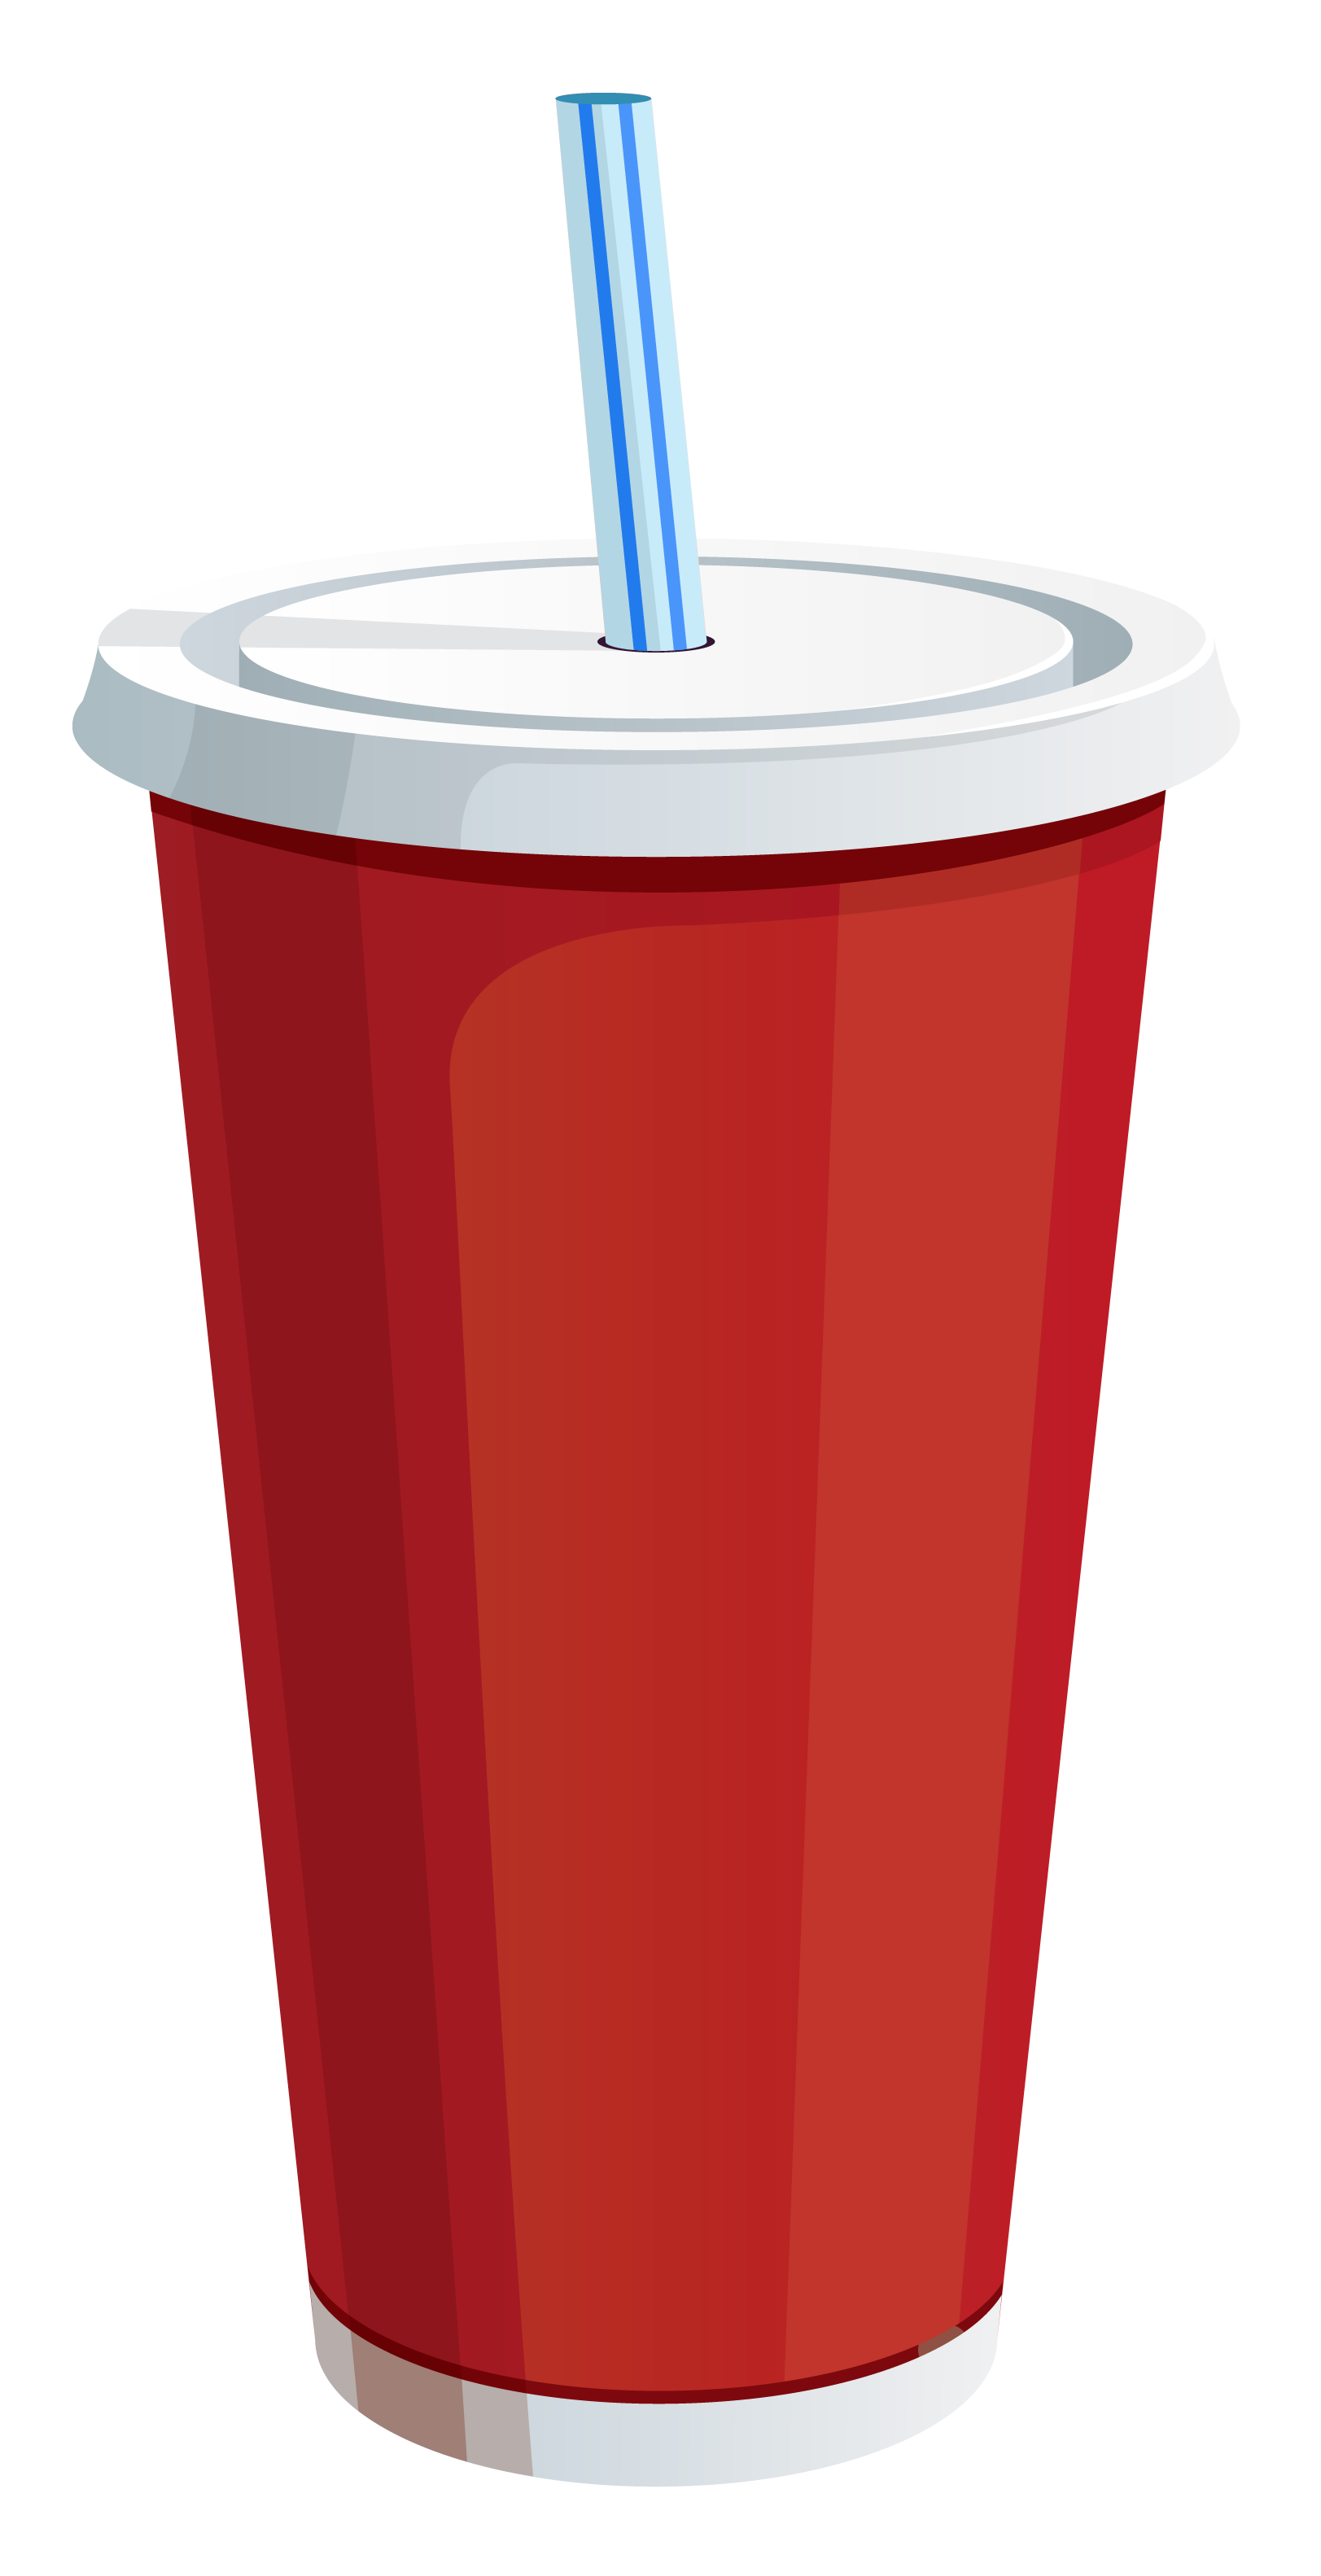 Cup clipart plastic cup. Red drink png vector